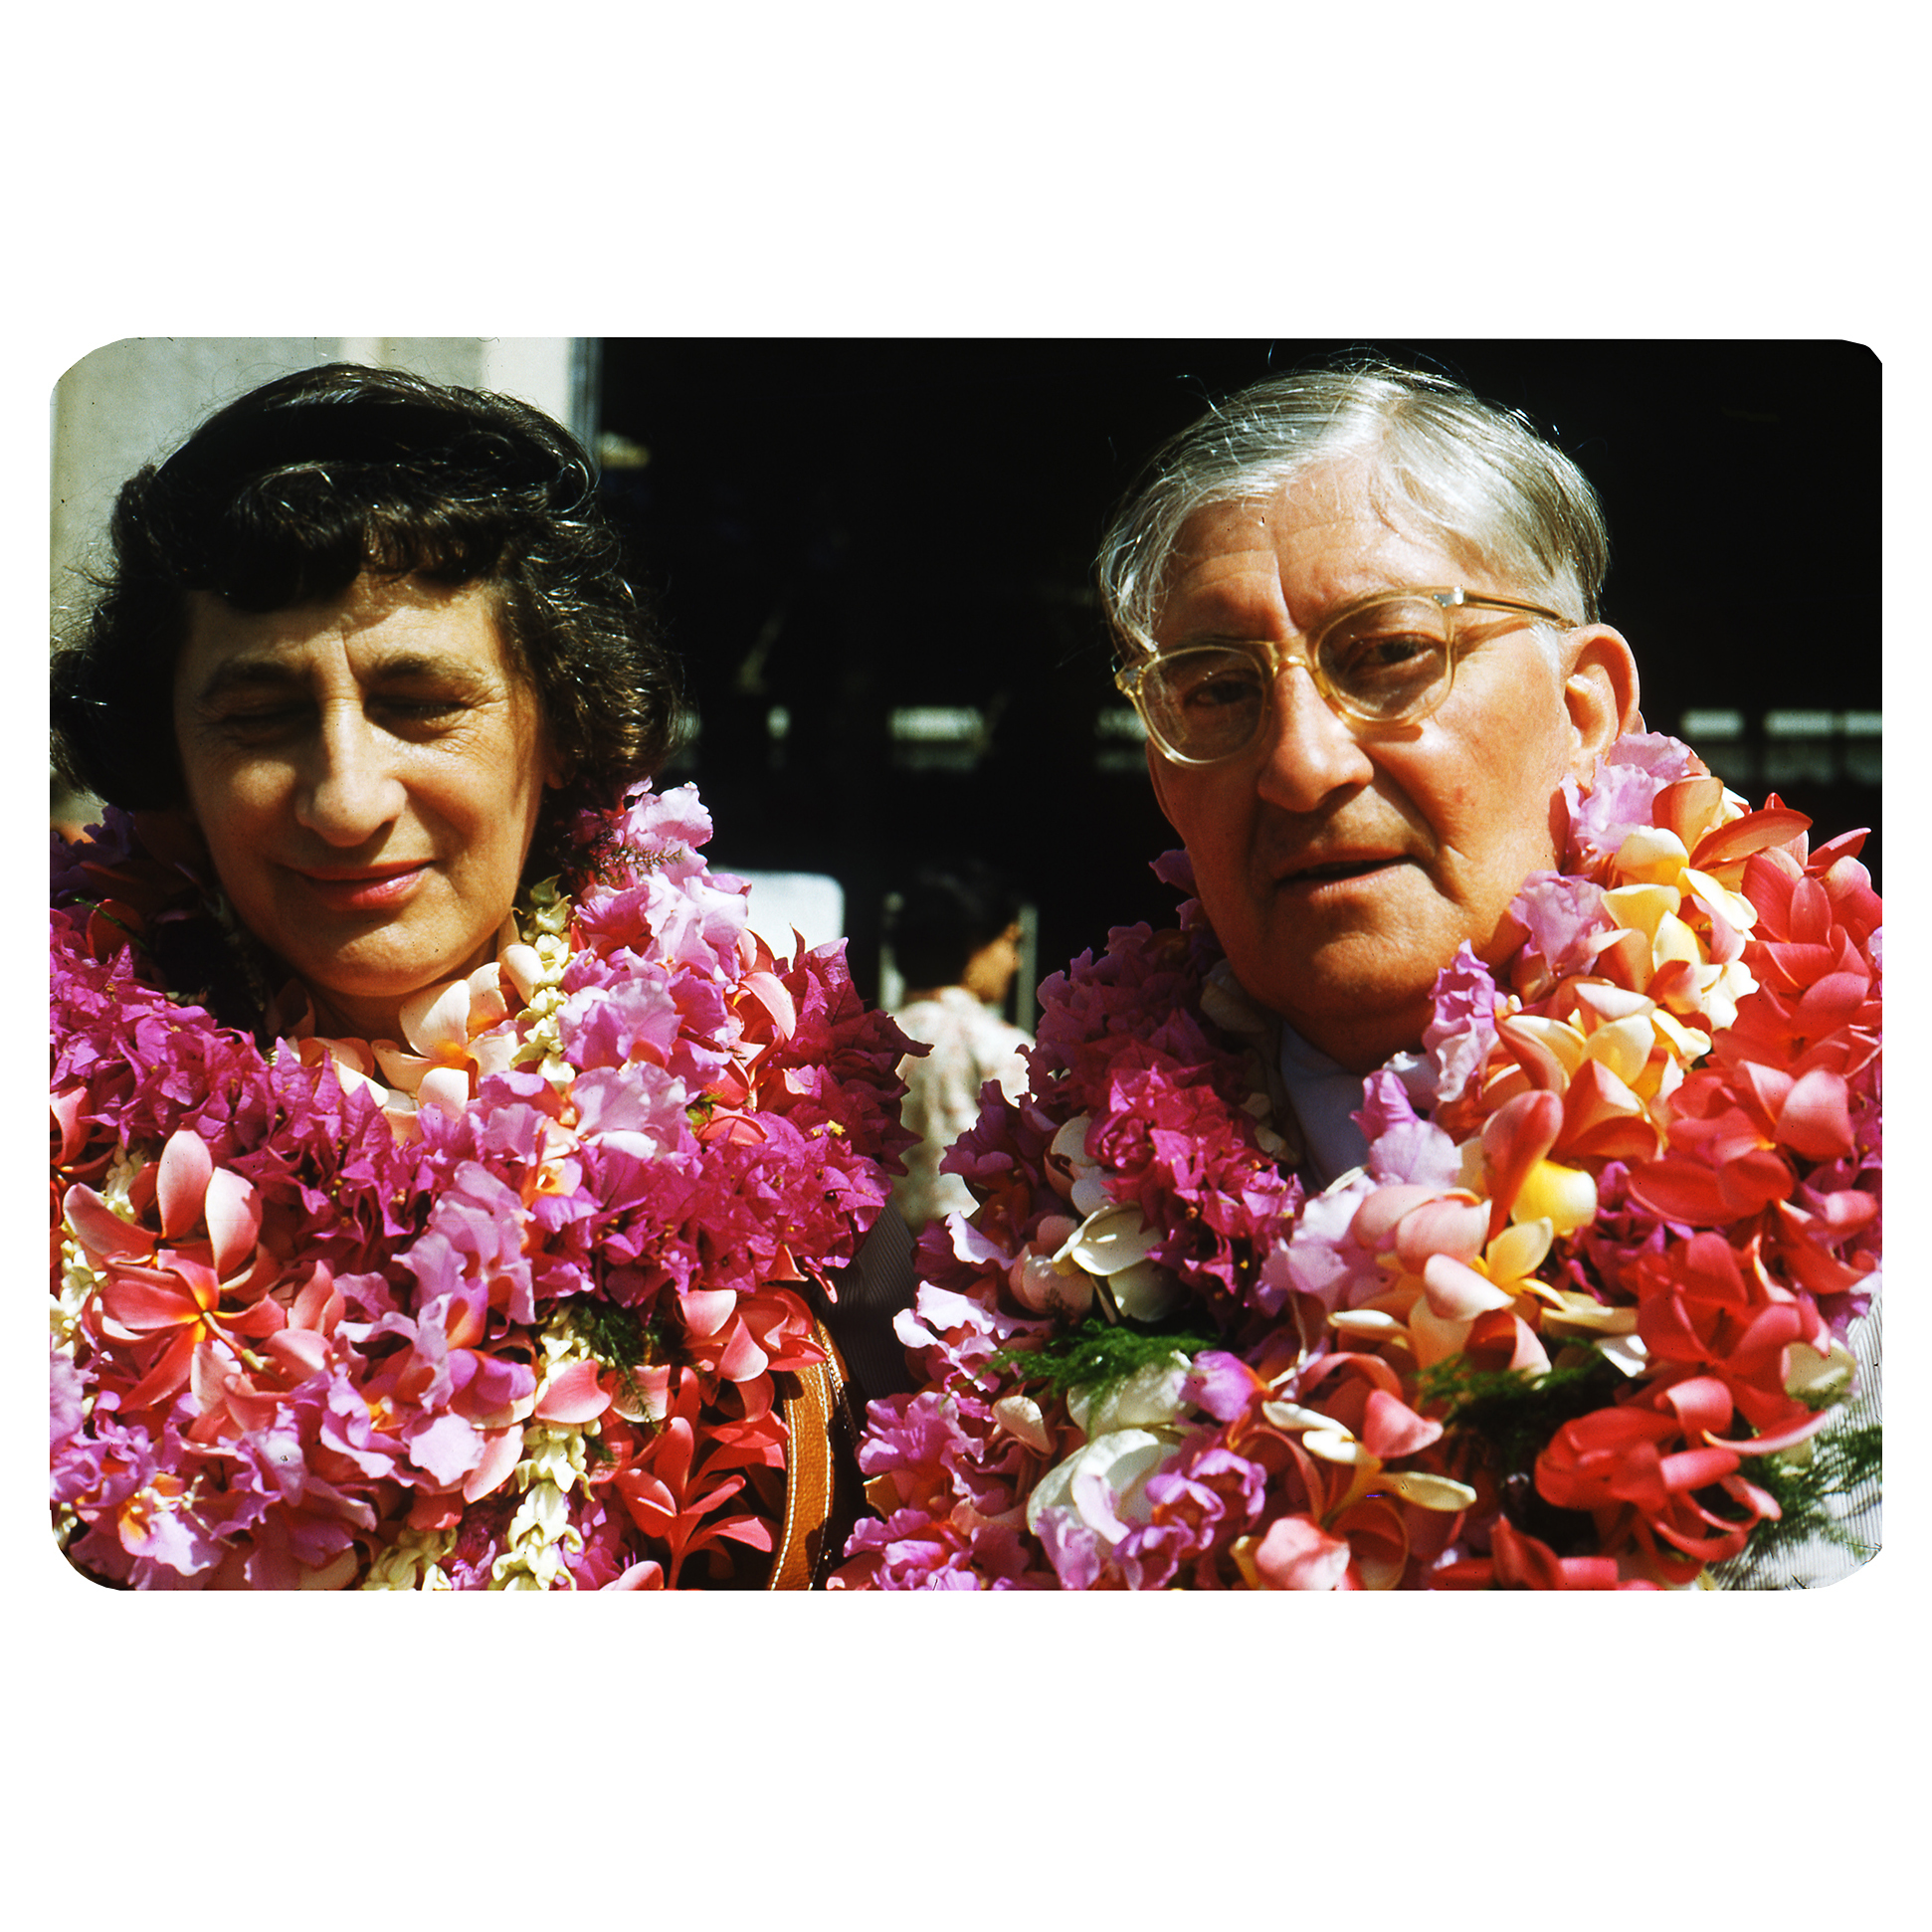 Josef Albers, Photographs of Hawaii, 1954. © 2020 The Josef and Anni Albers Foundation/ARS, NY/DACS.